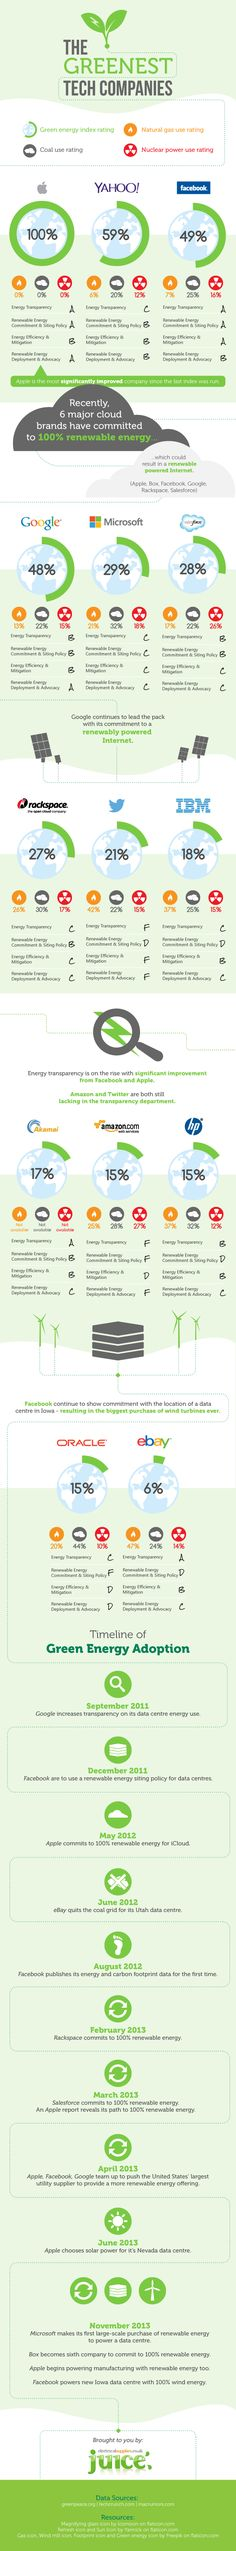 The Greenest Tech Companies